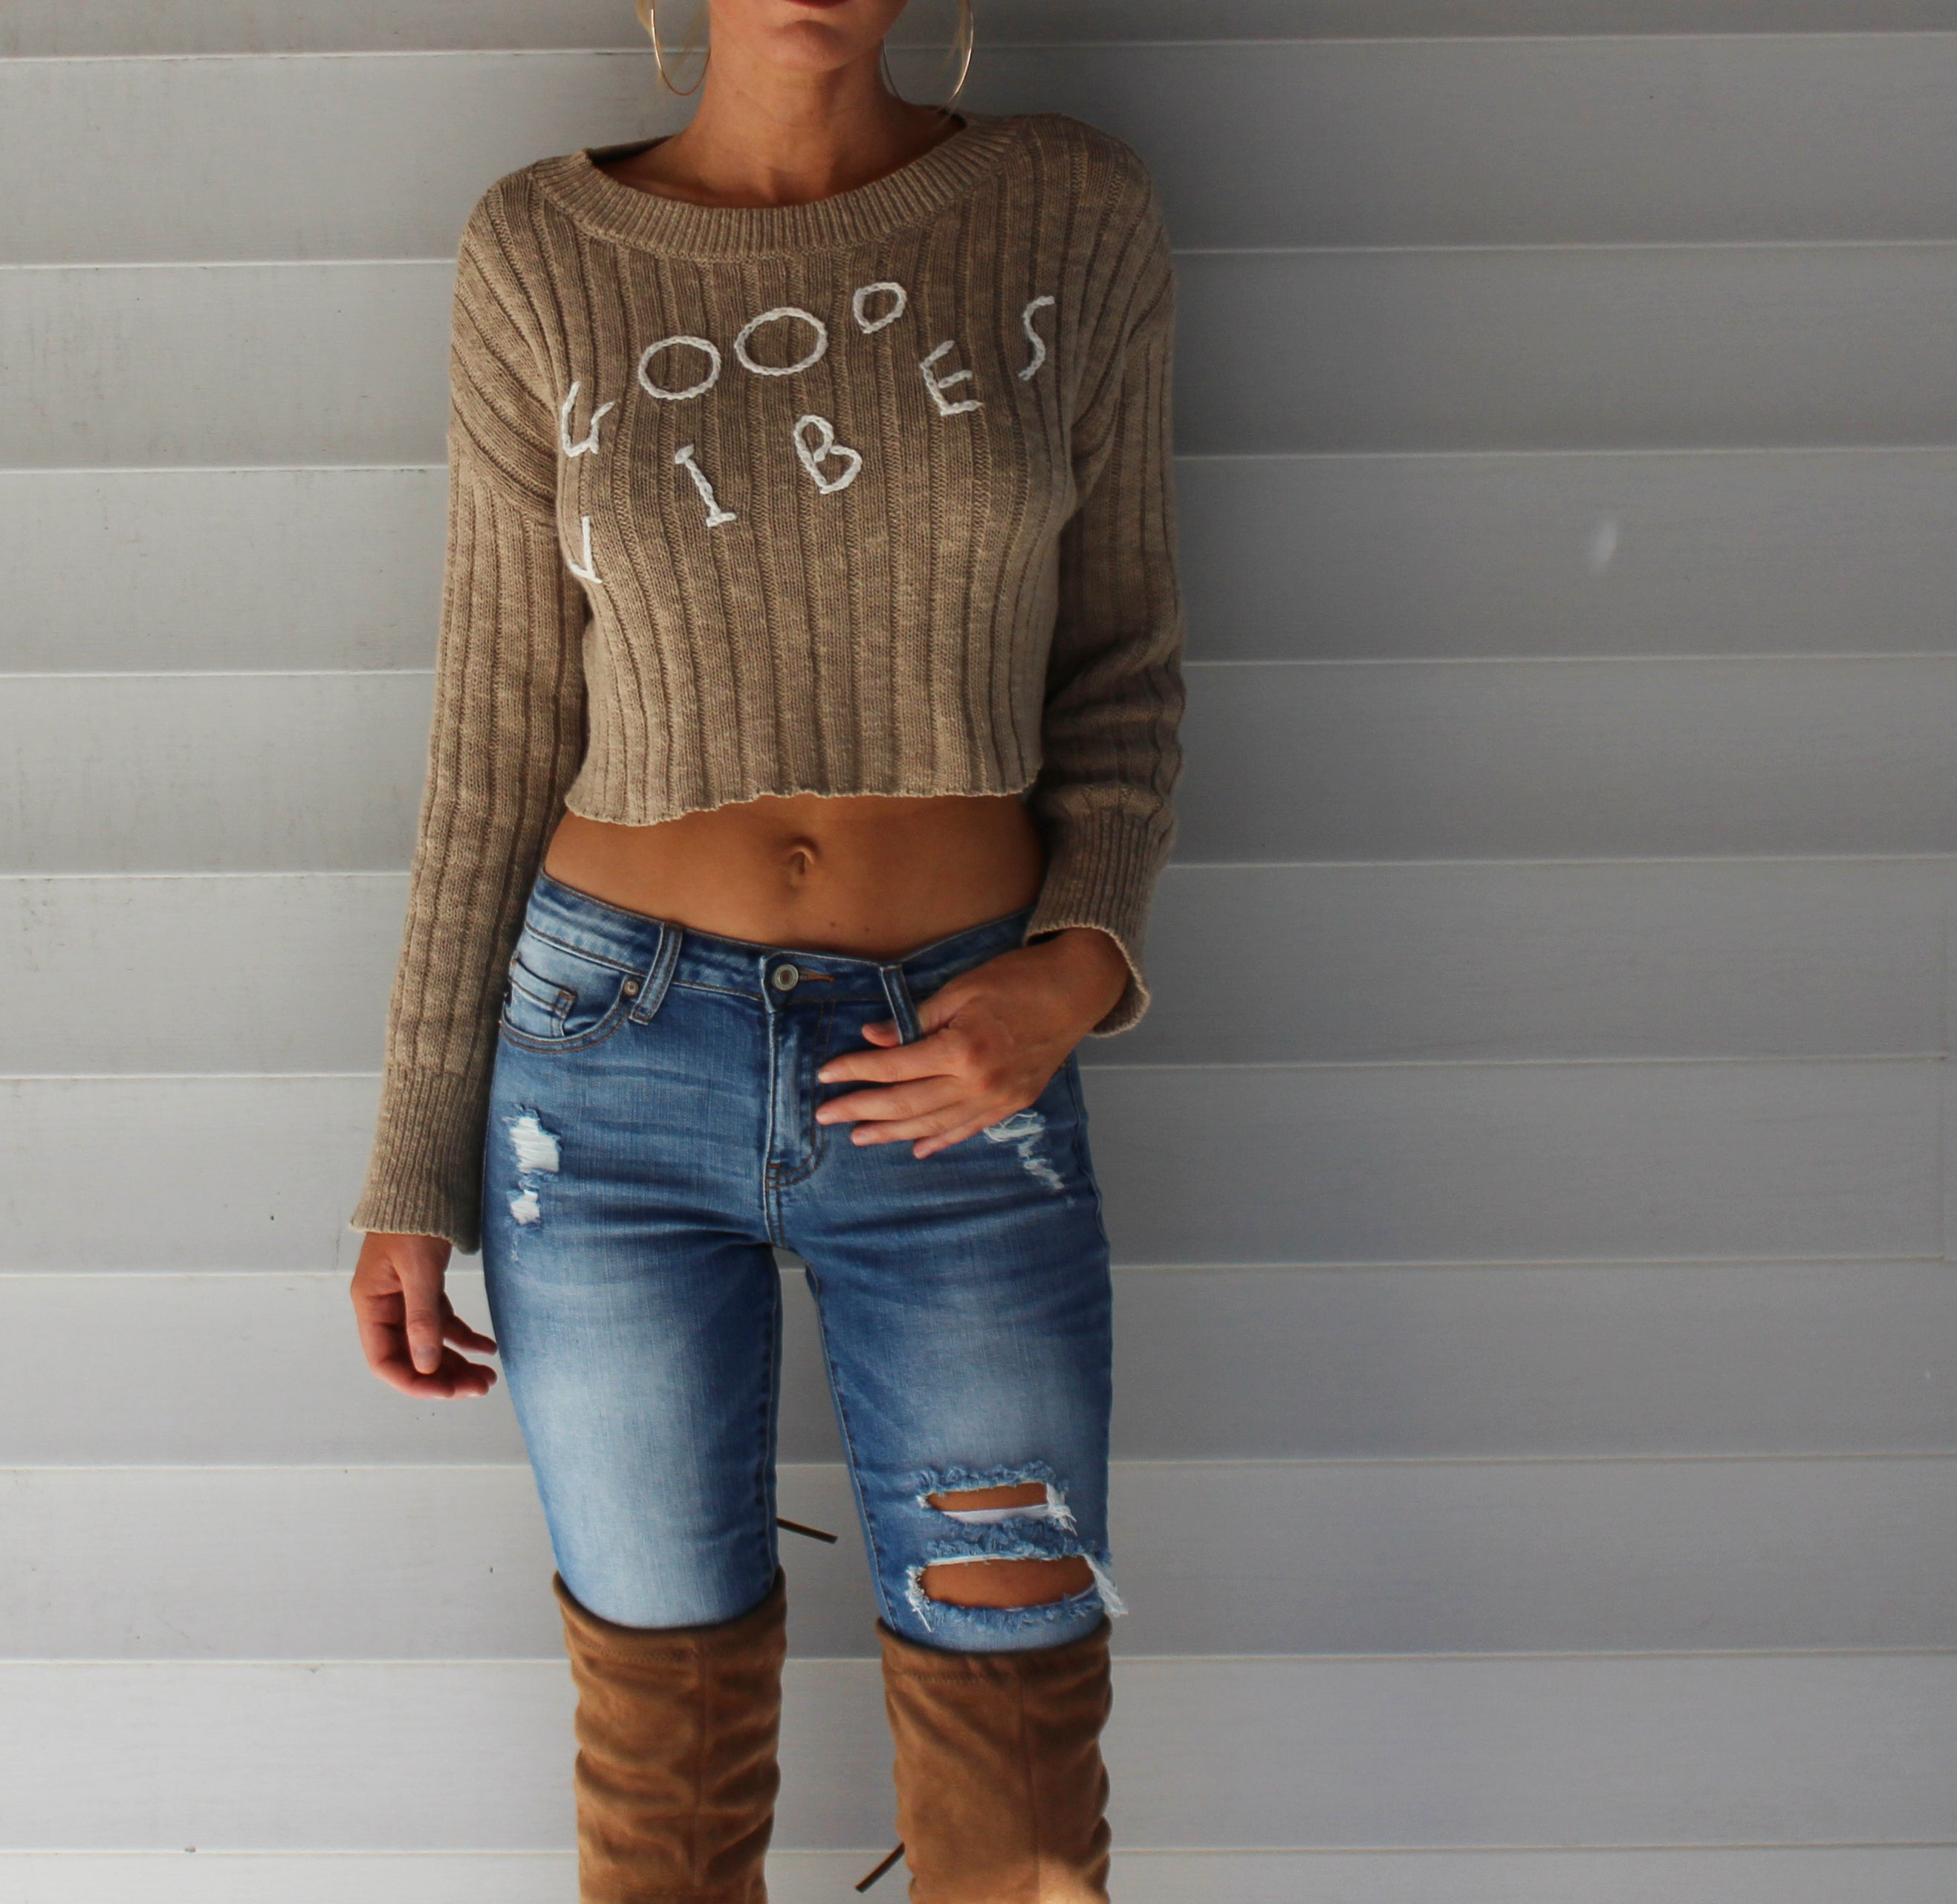 Encinitas Cropped Sweater